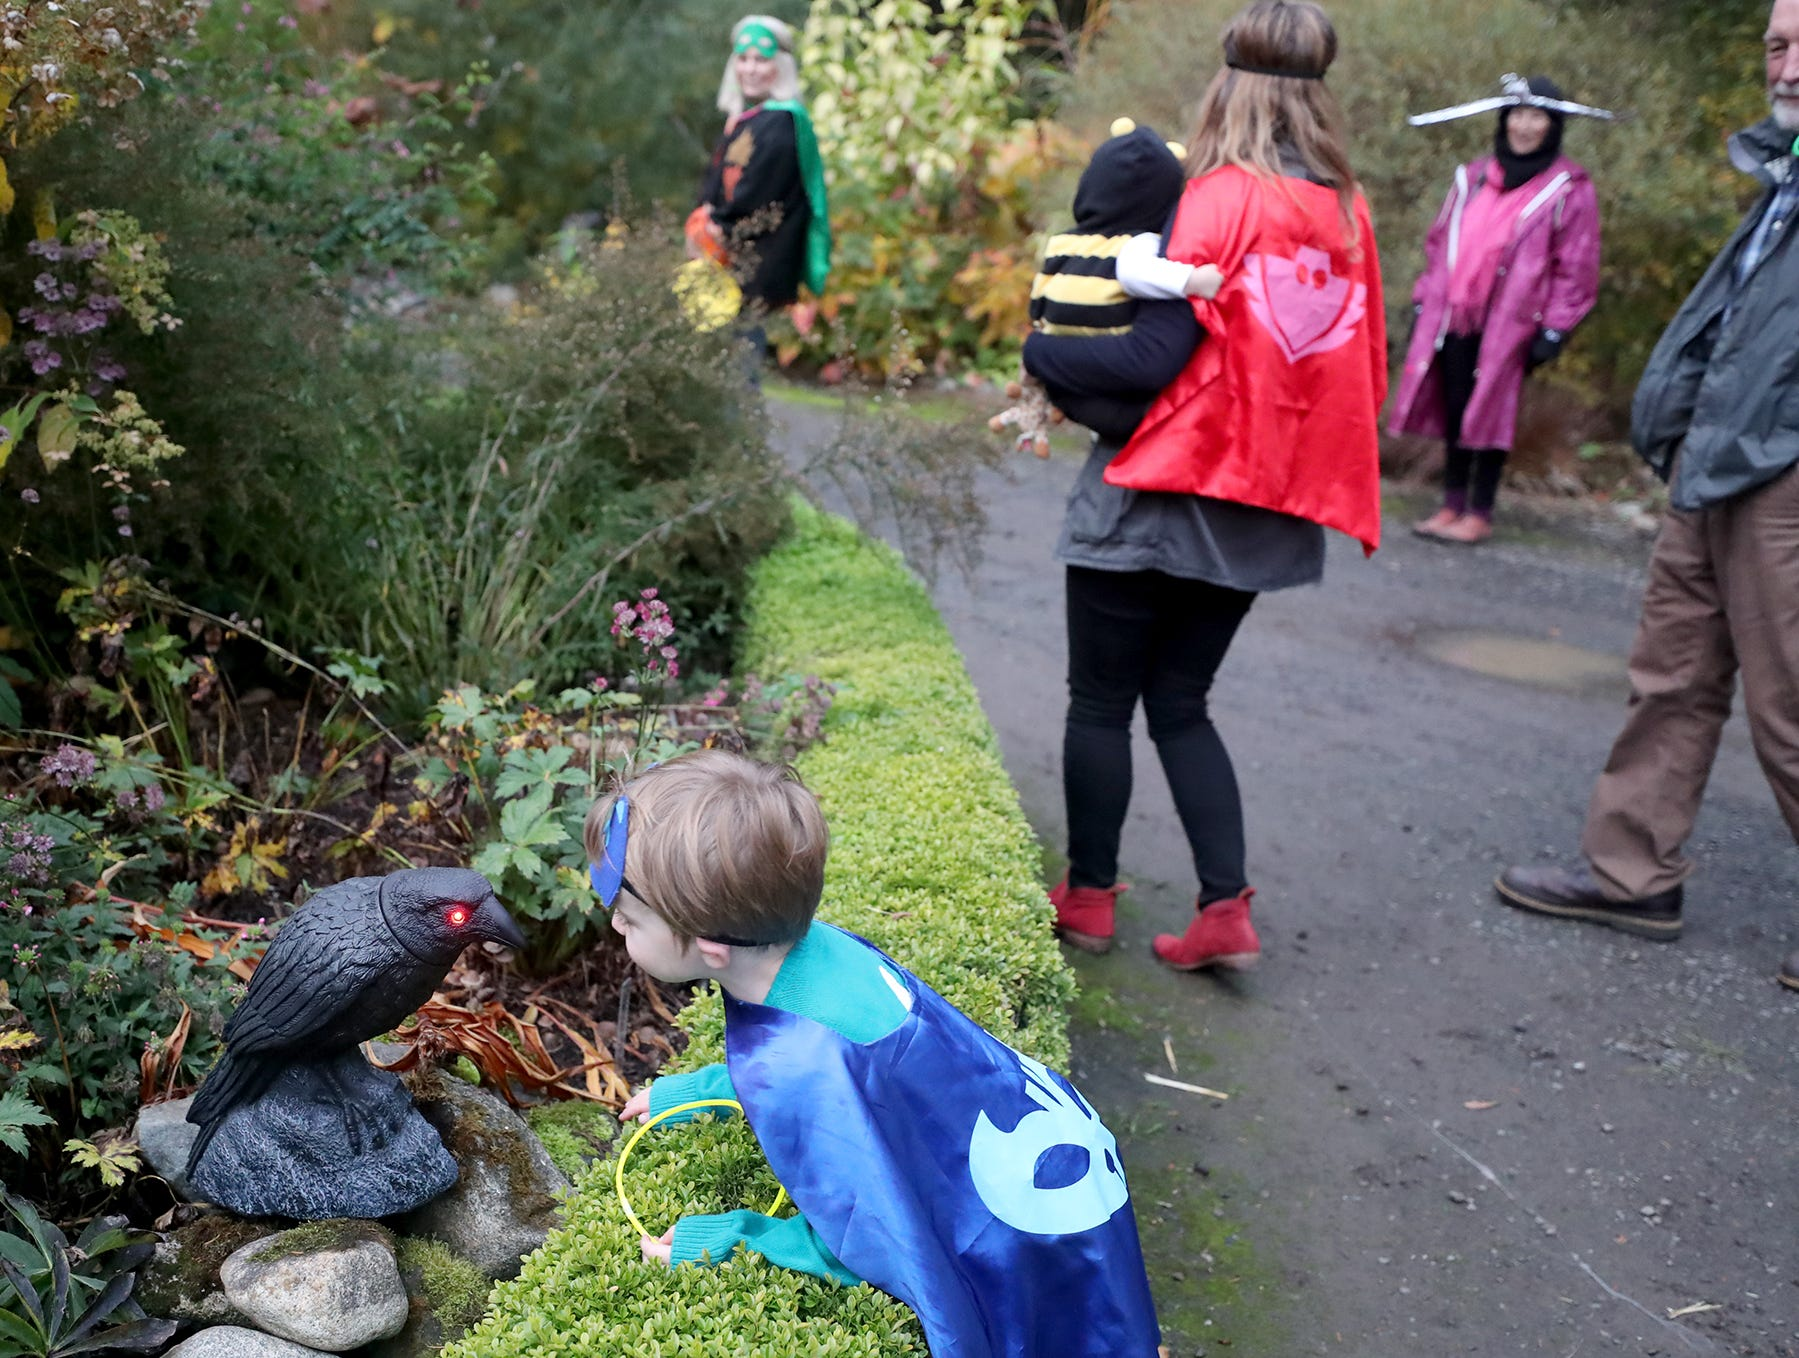 Theo Sanders, 4, of Snoqualmie gets a close up view of a raven at the Haunted Heronswood 2018 in Kingston was Friday and Saturday, October,26-27. The second annual garden halloween charters tour featured some SÕKlallam folk stories.